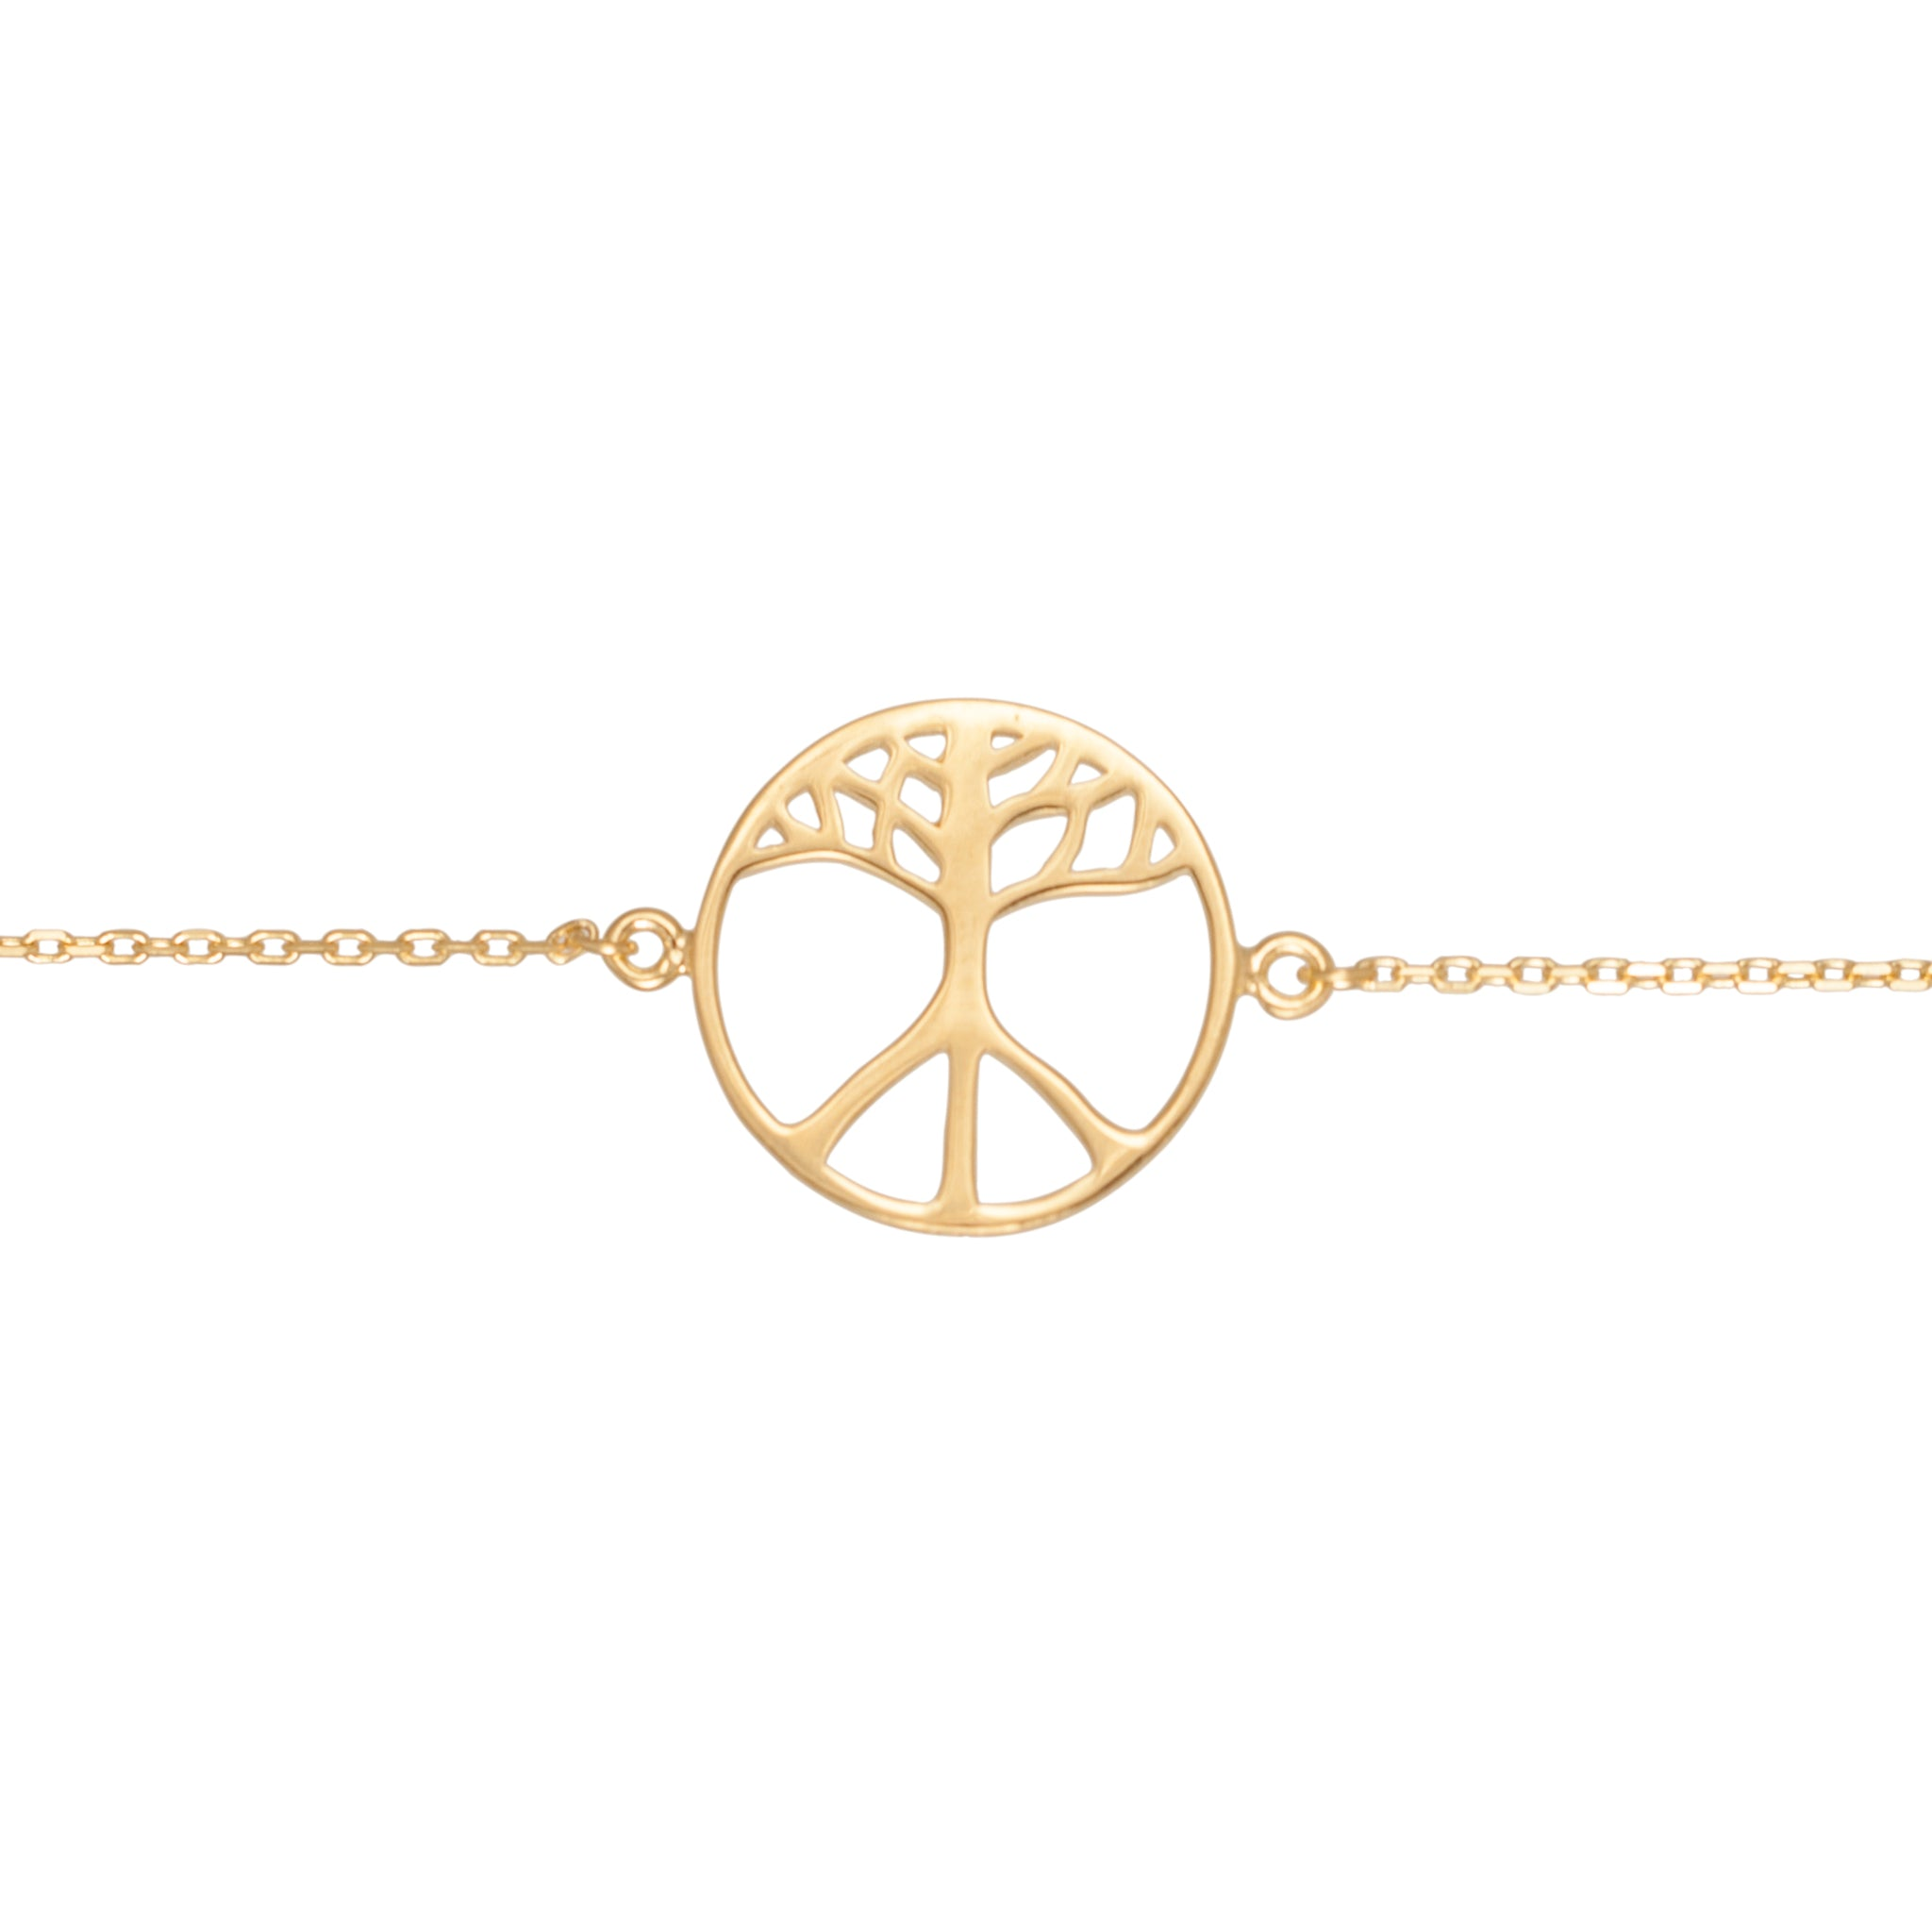 BON HOPE - One Earth Gold Bracelet. The symbol is a merge of the tree of life and the classic peace symbol. 100% recycled silver jewelry ethically made in Bali.